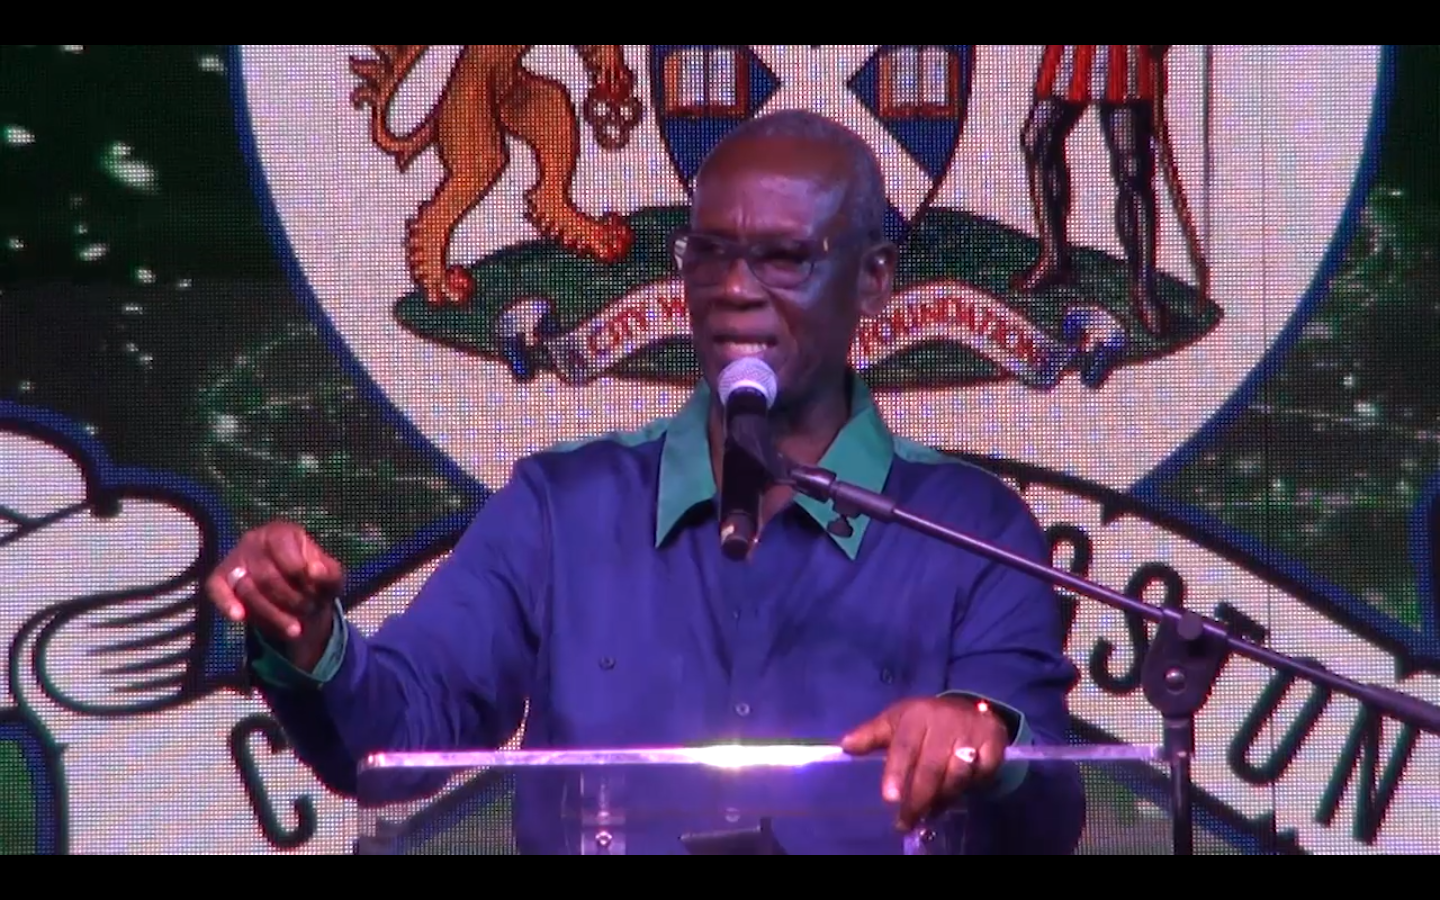 Desmond Mckenzie Urges Citizens To Comply With AmendedNoise Abatement Act